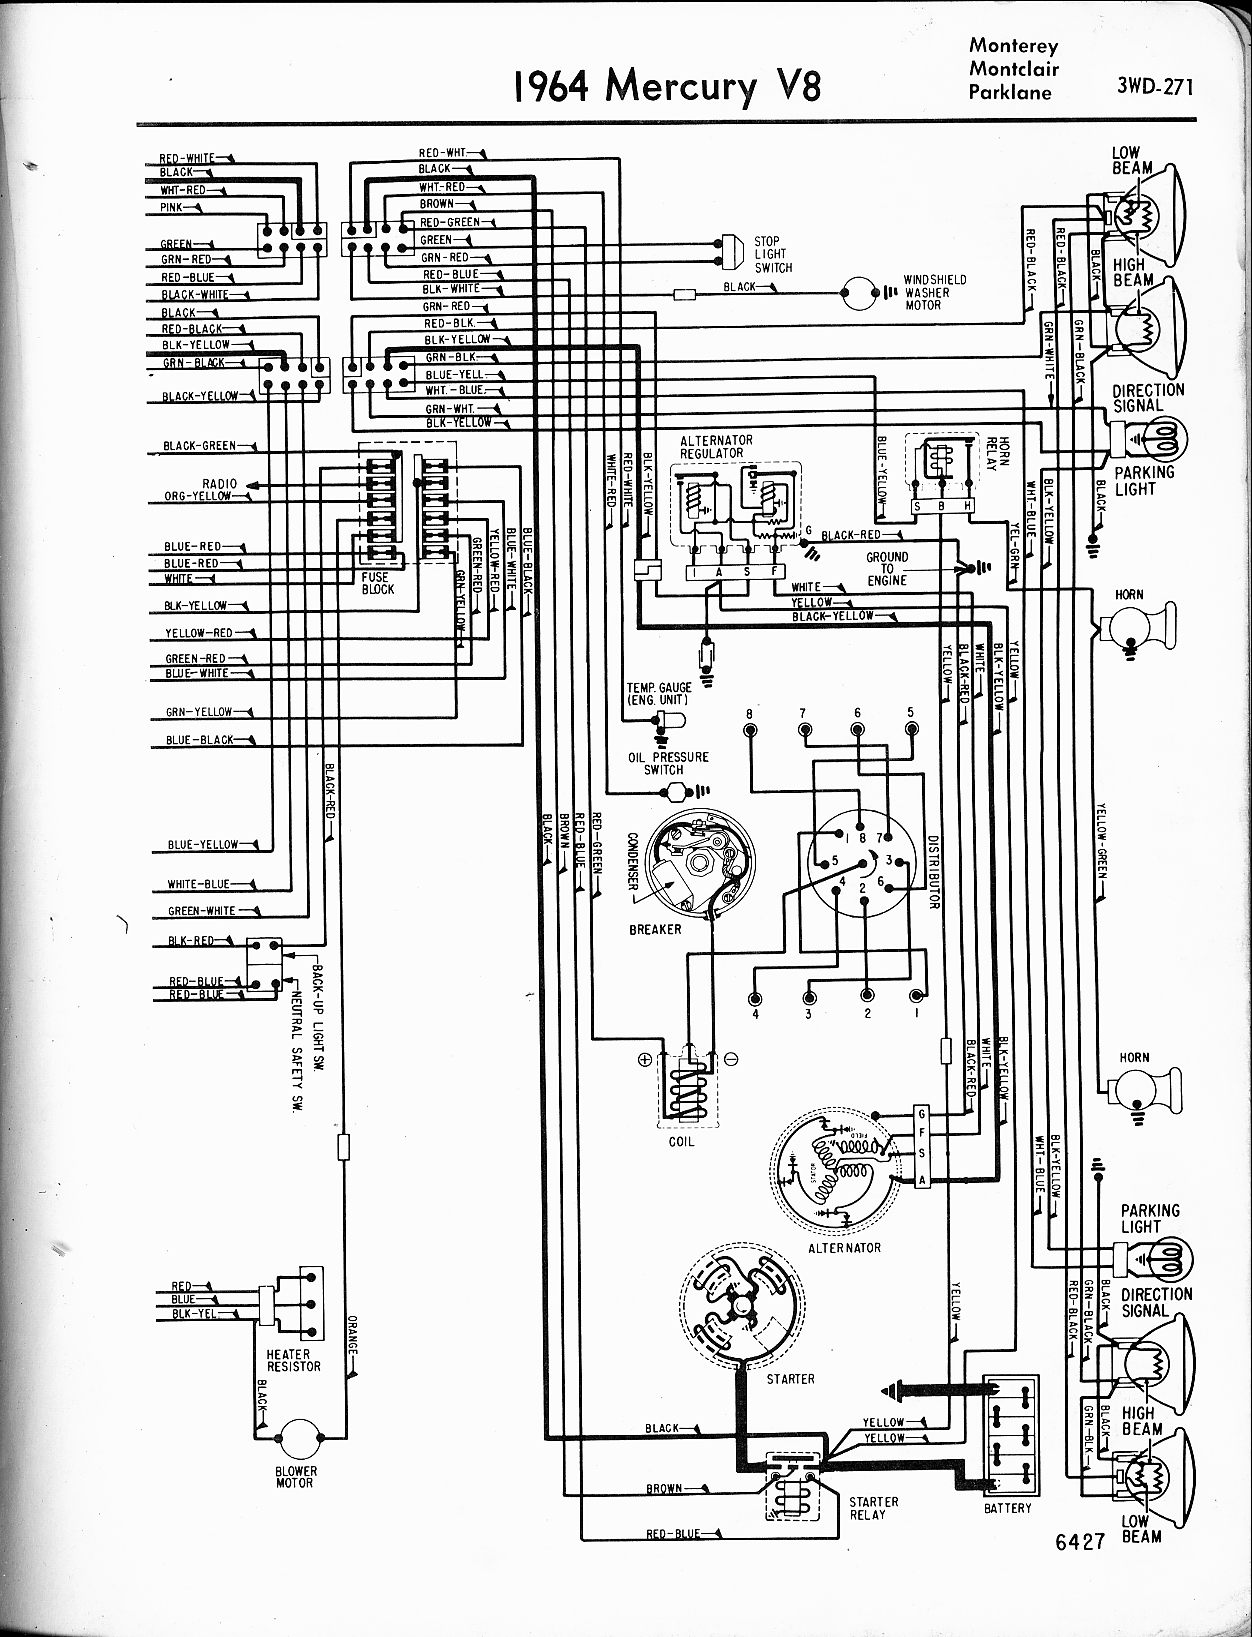 MWire5765 271 65 comet wiring diagram 65 ford comet \u2022 wiring diagrams j squared co 1969 mustang alternator wiring diagram at gsmportal.co